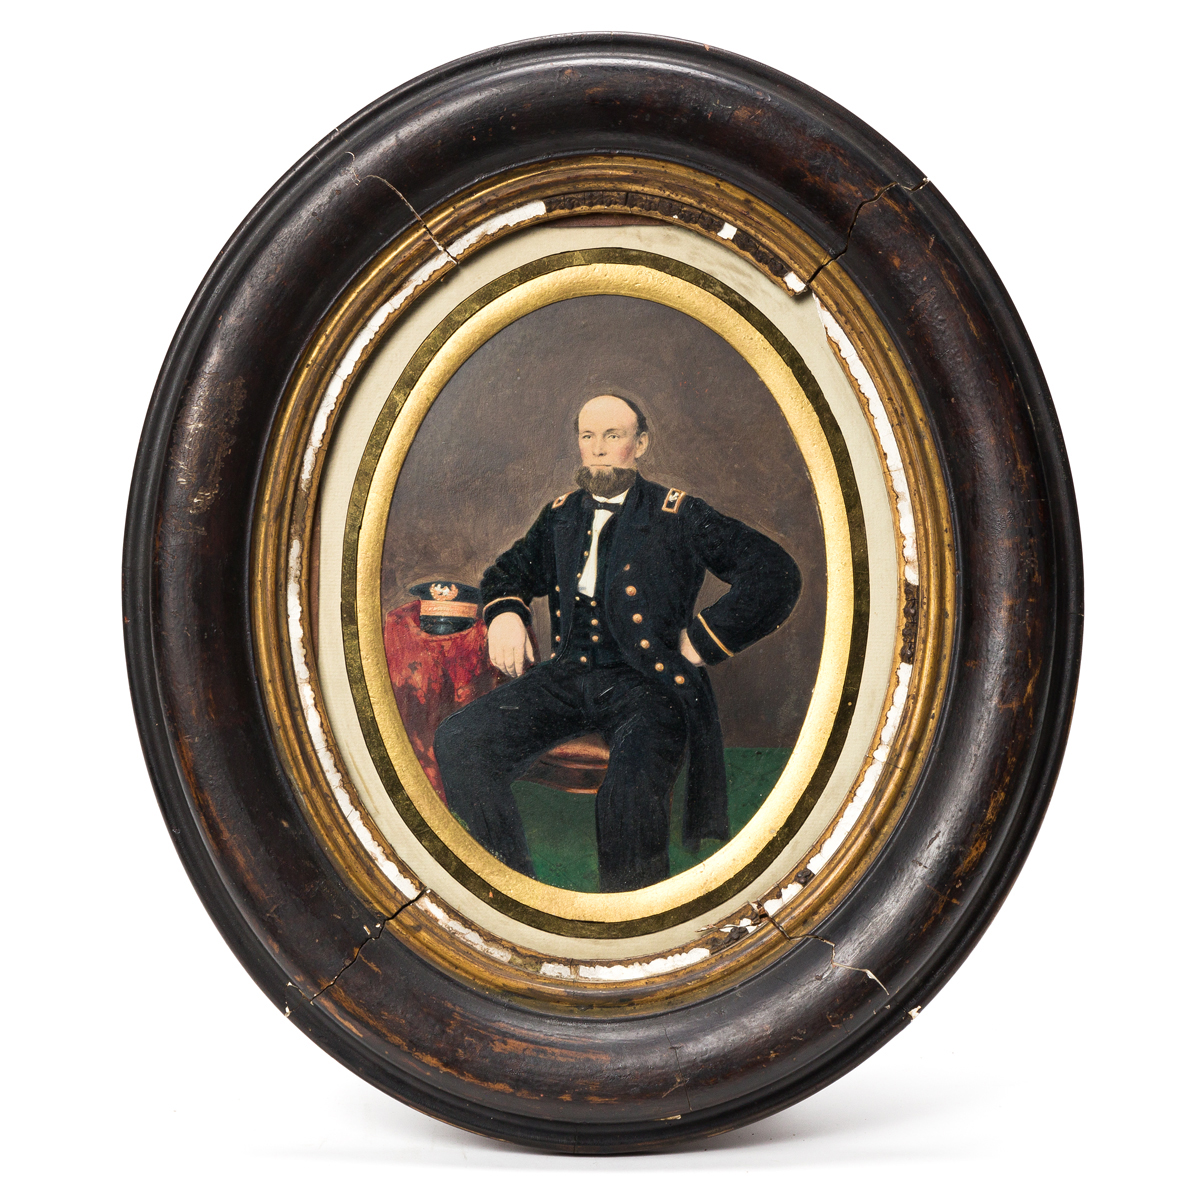 (CIVIL WAR--NAVY.) Portrait and papers of Ensign Christopher Flood.